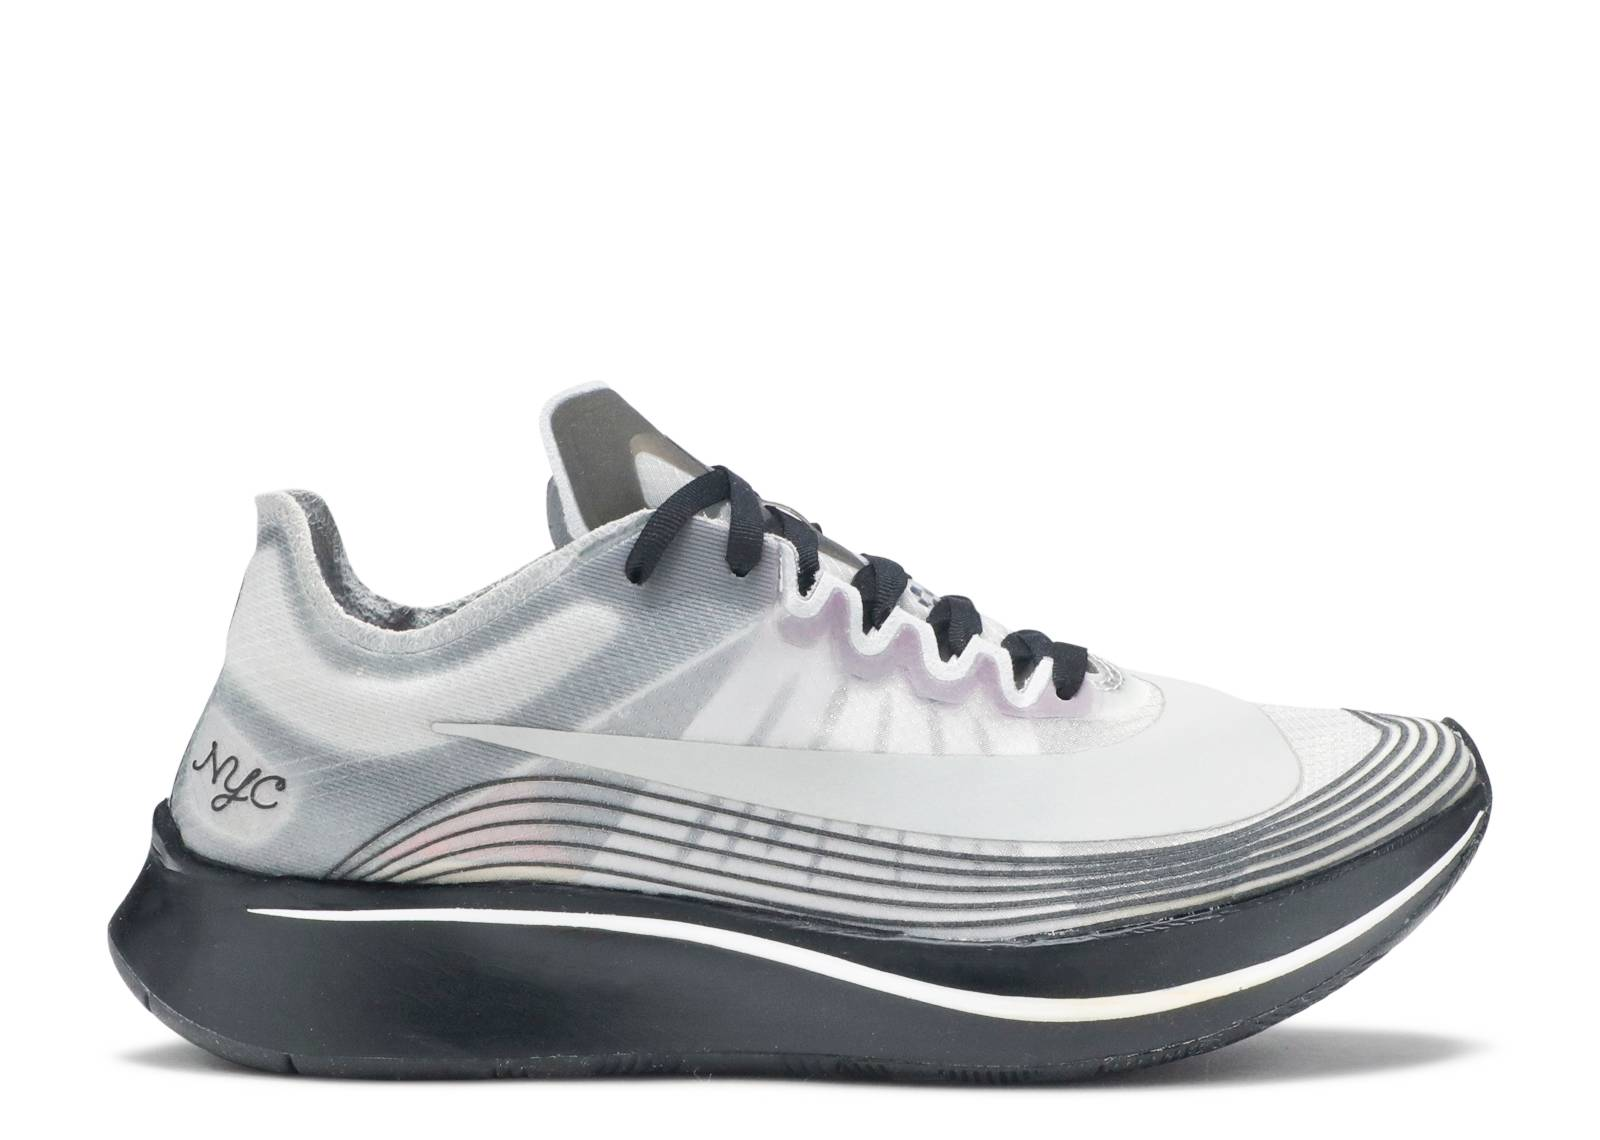 NIKELAB ZOOM FLY NYC AH5088-001 Black White Black